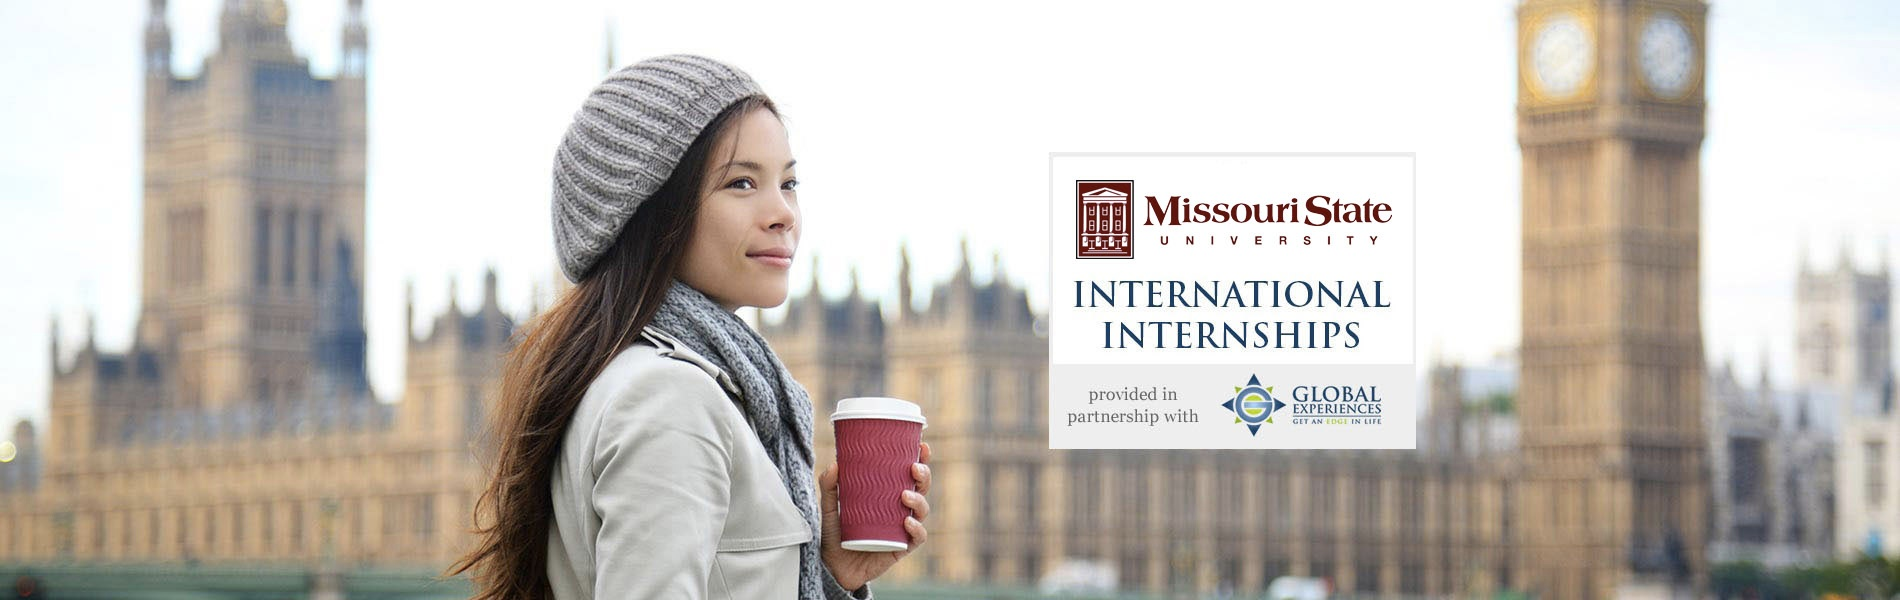 Missouri State University Intern Abroad